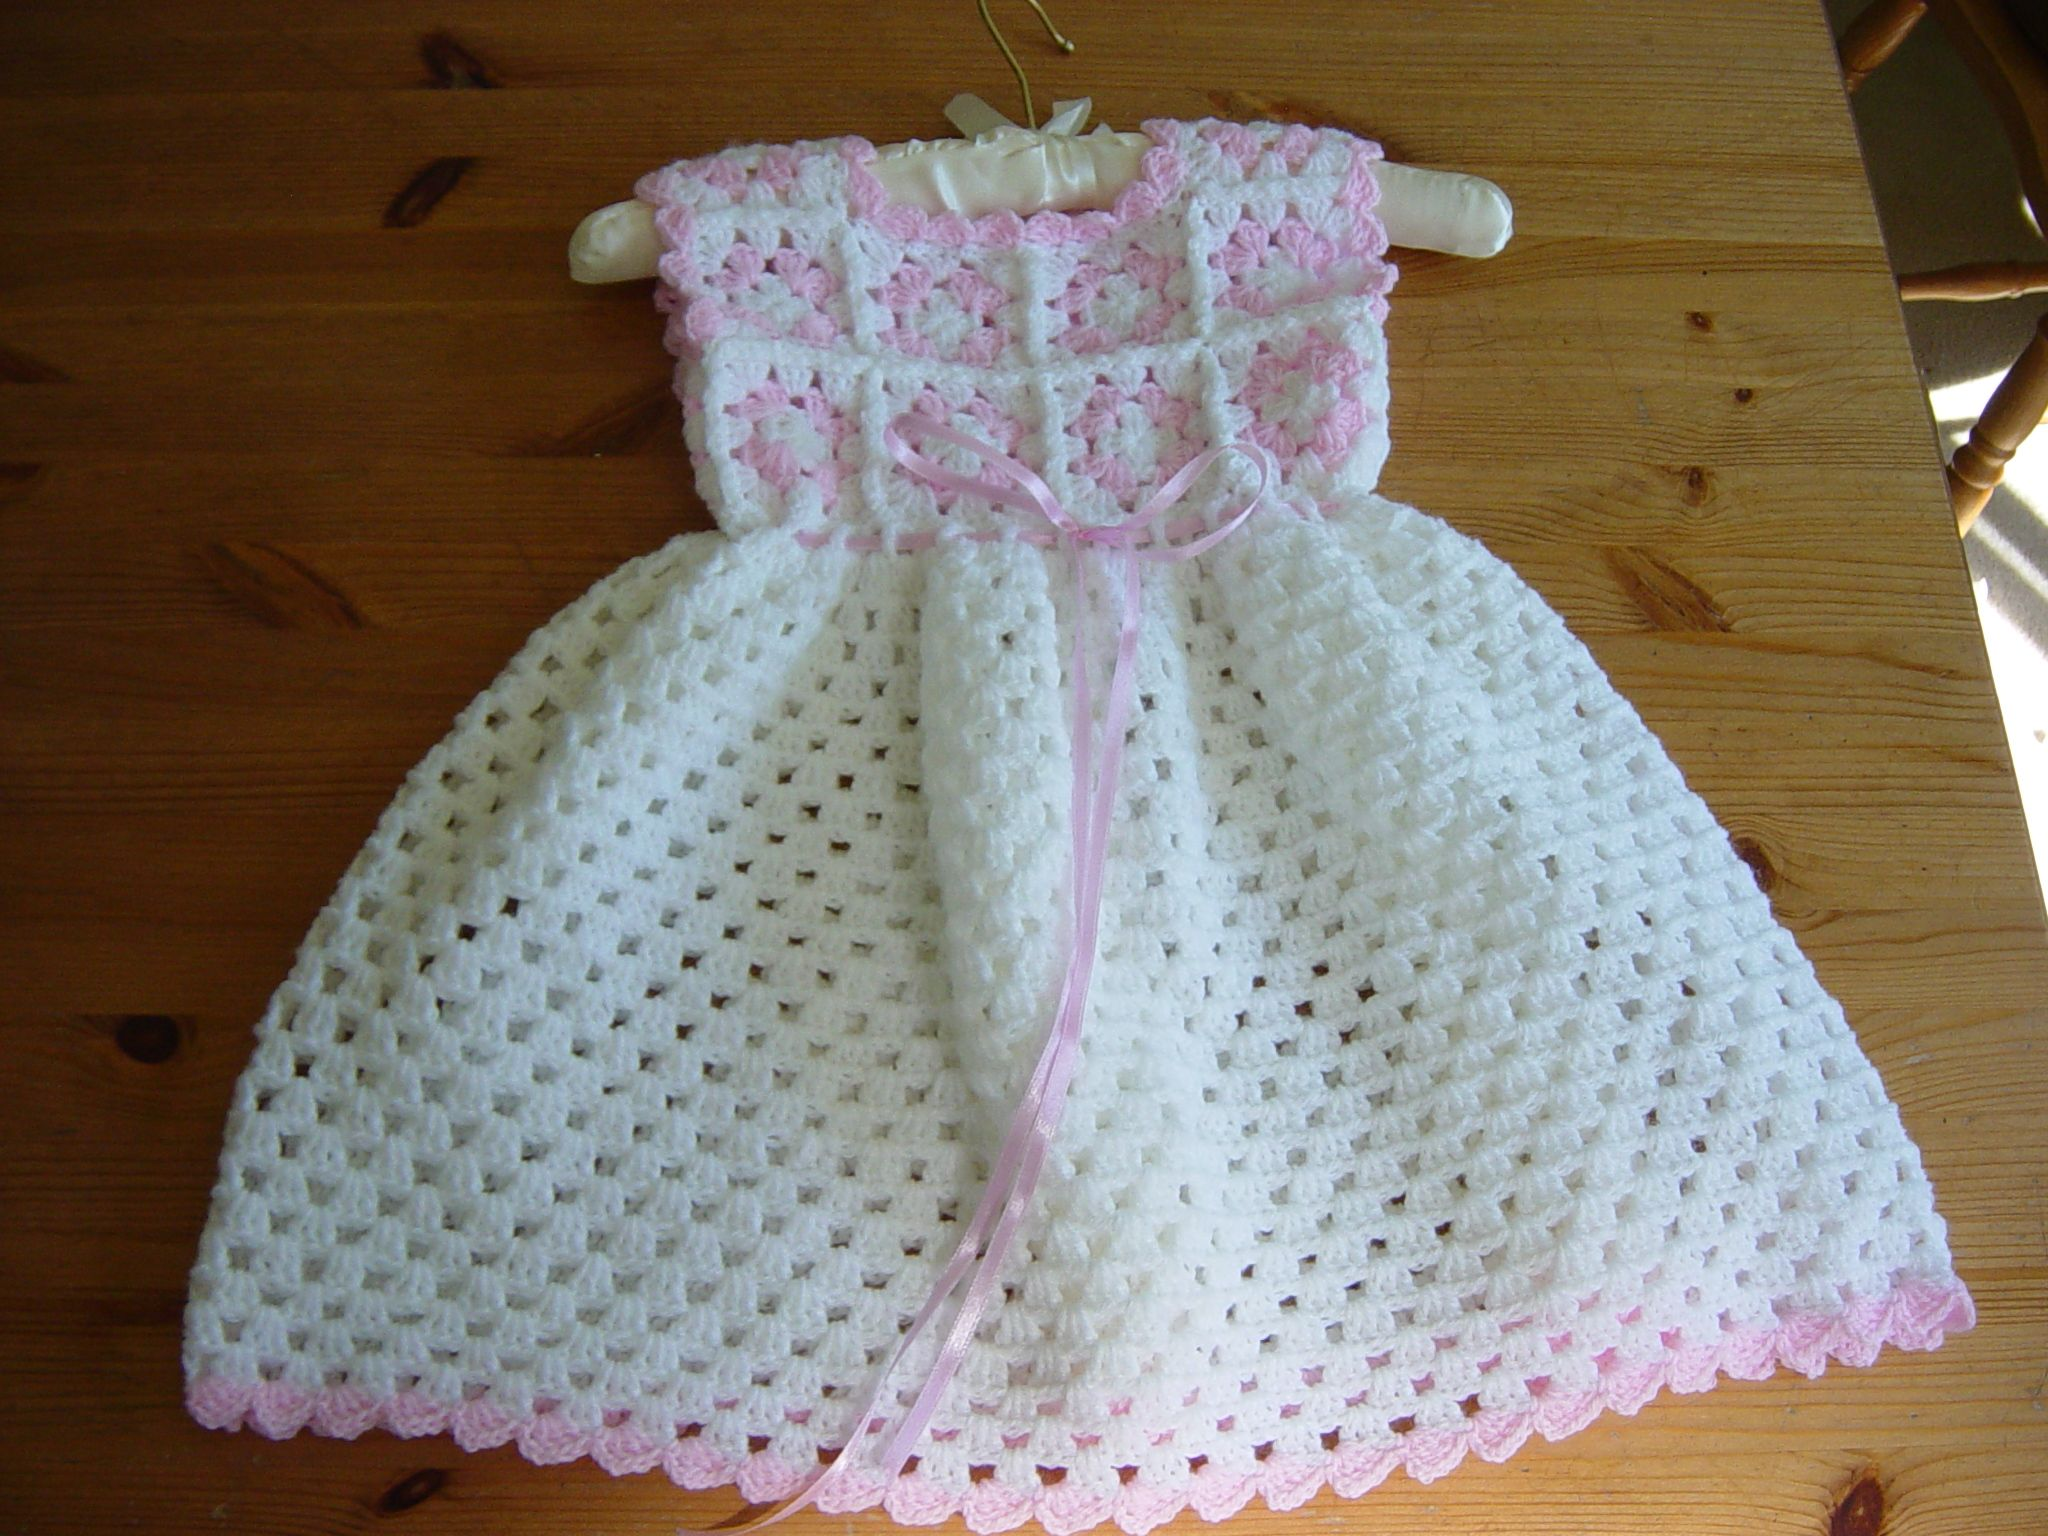 a60d4907d171 Pretty crochet toddler dress. Pattern found on pinterest for FREE. Those  are the best patterns. FREE!